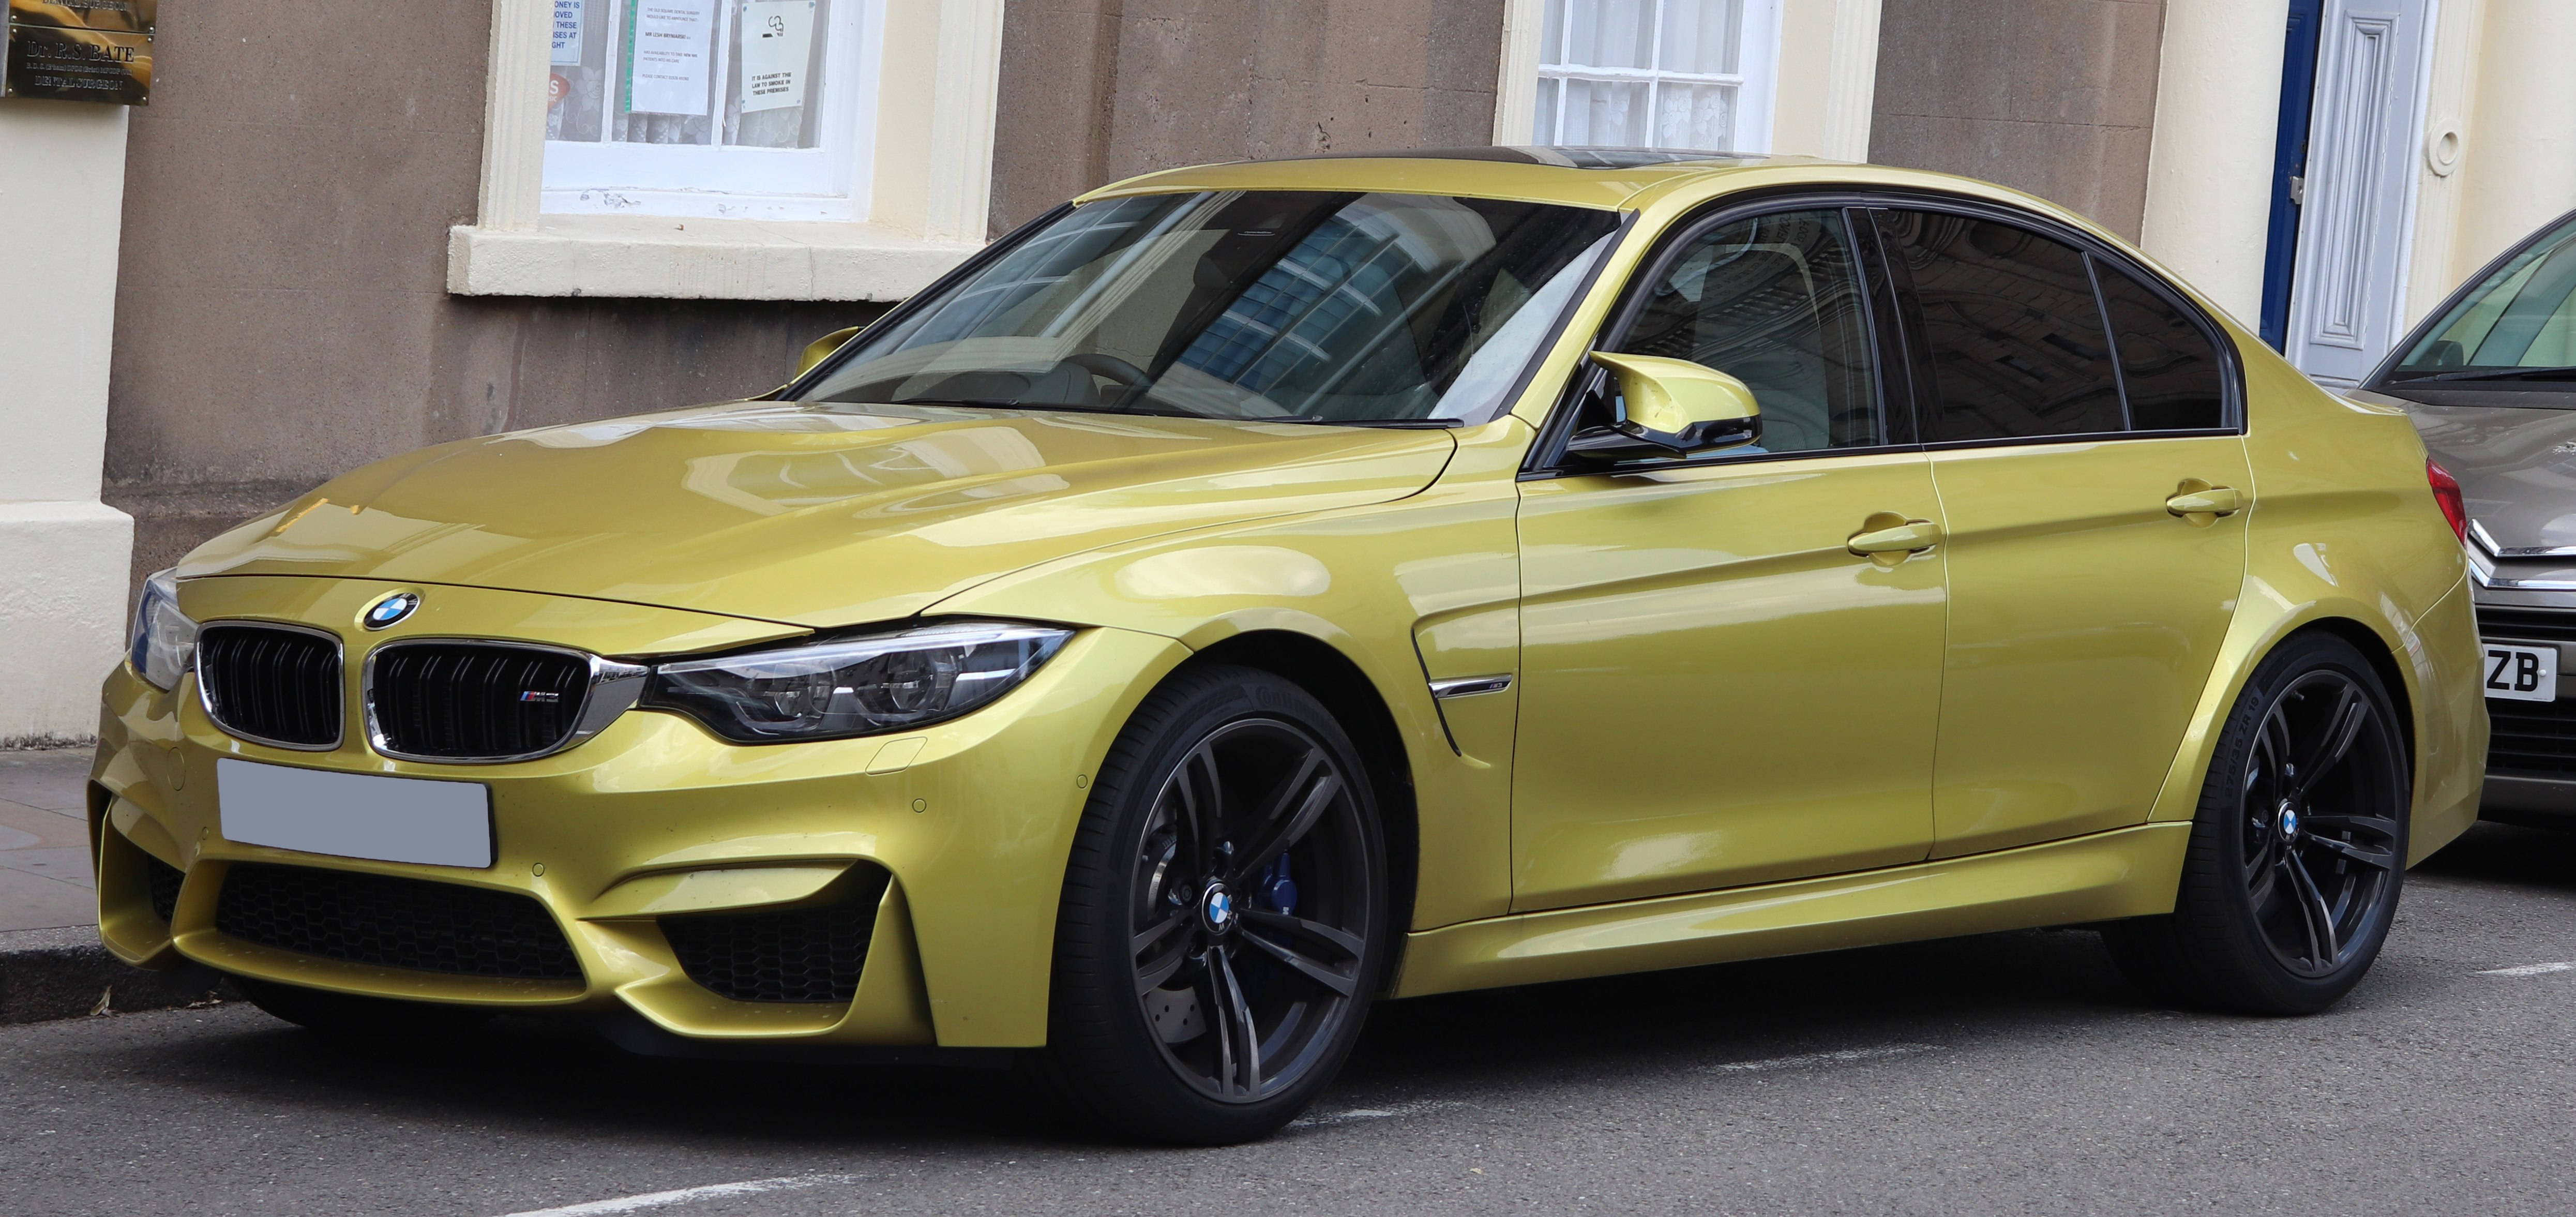 Bmw M3 The Complete Information And Online Sale With Free Shipping